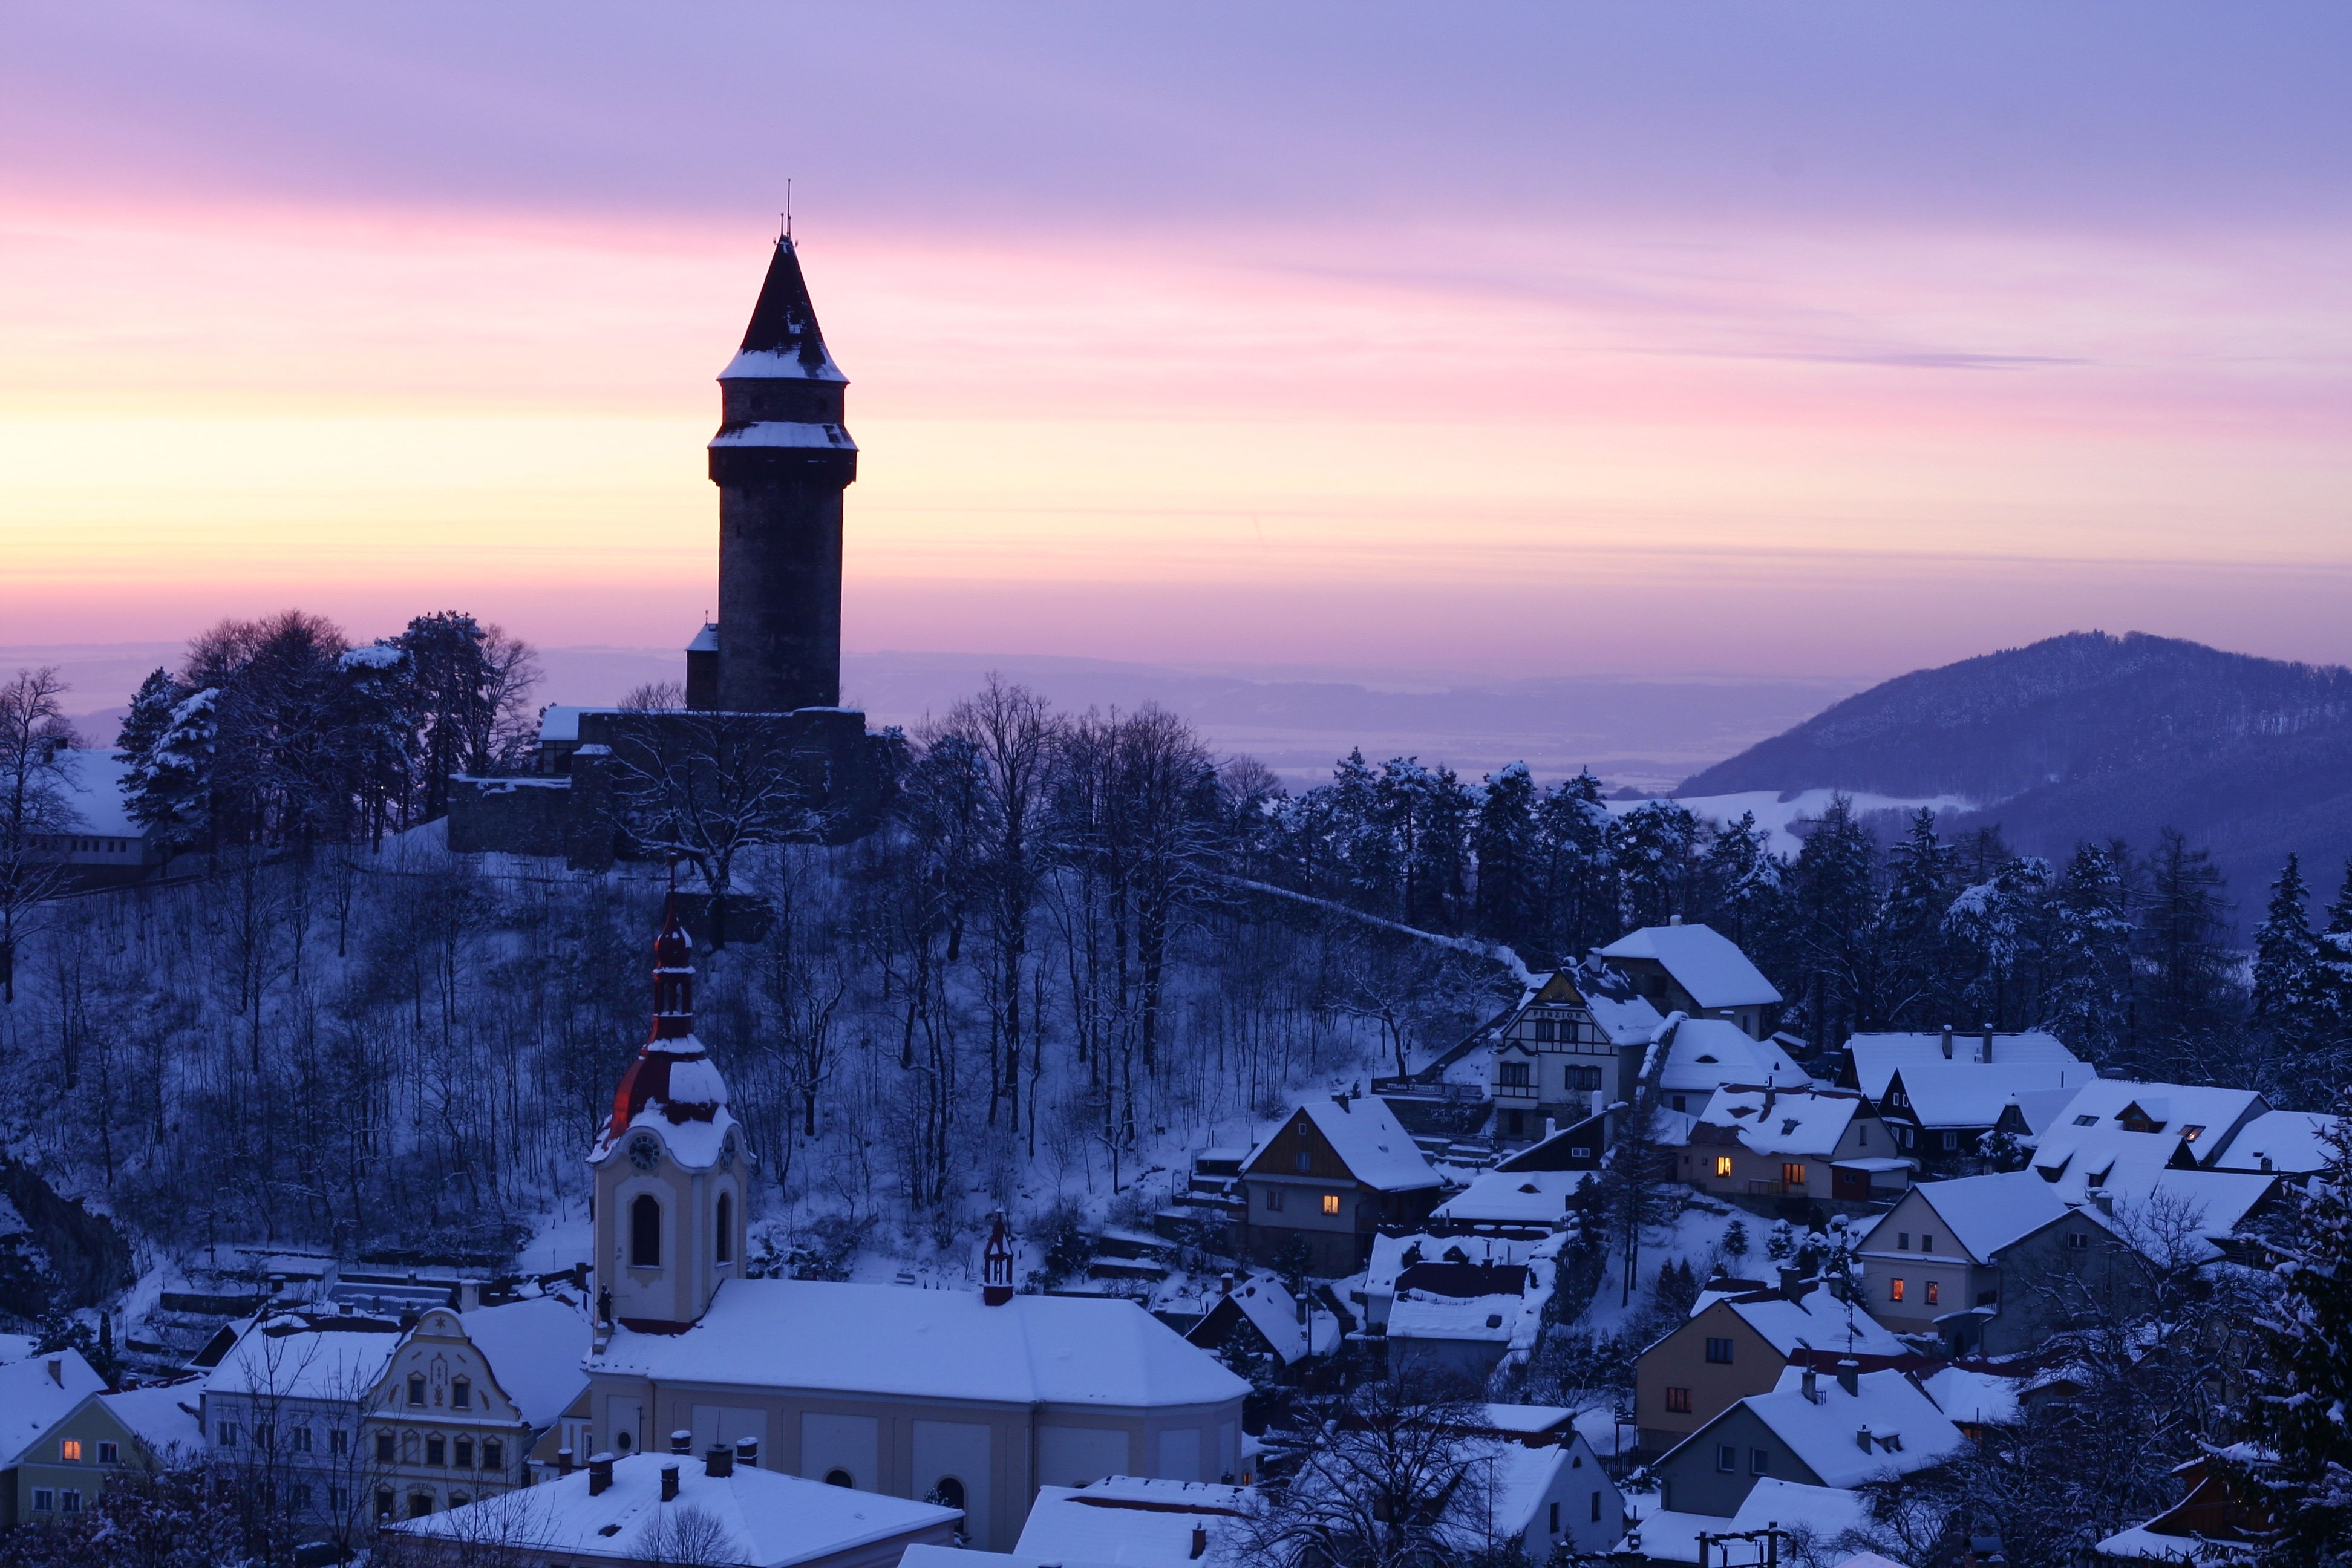 Sunset and snow, hot and cold !